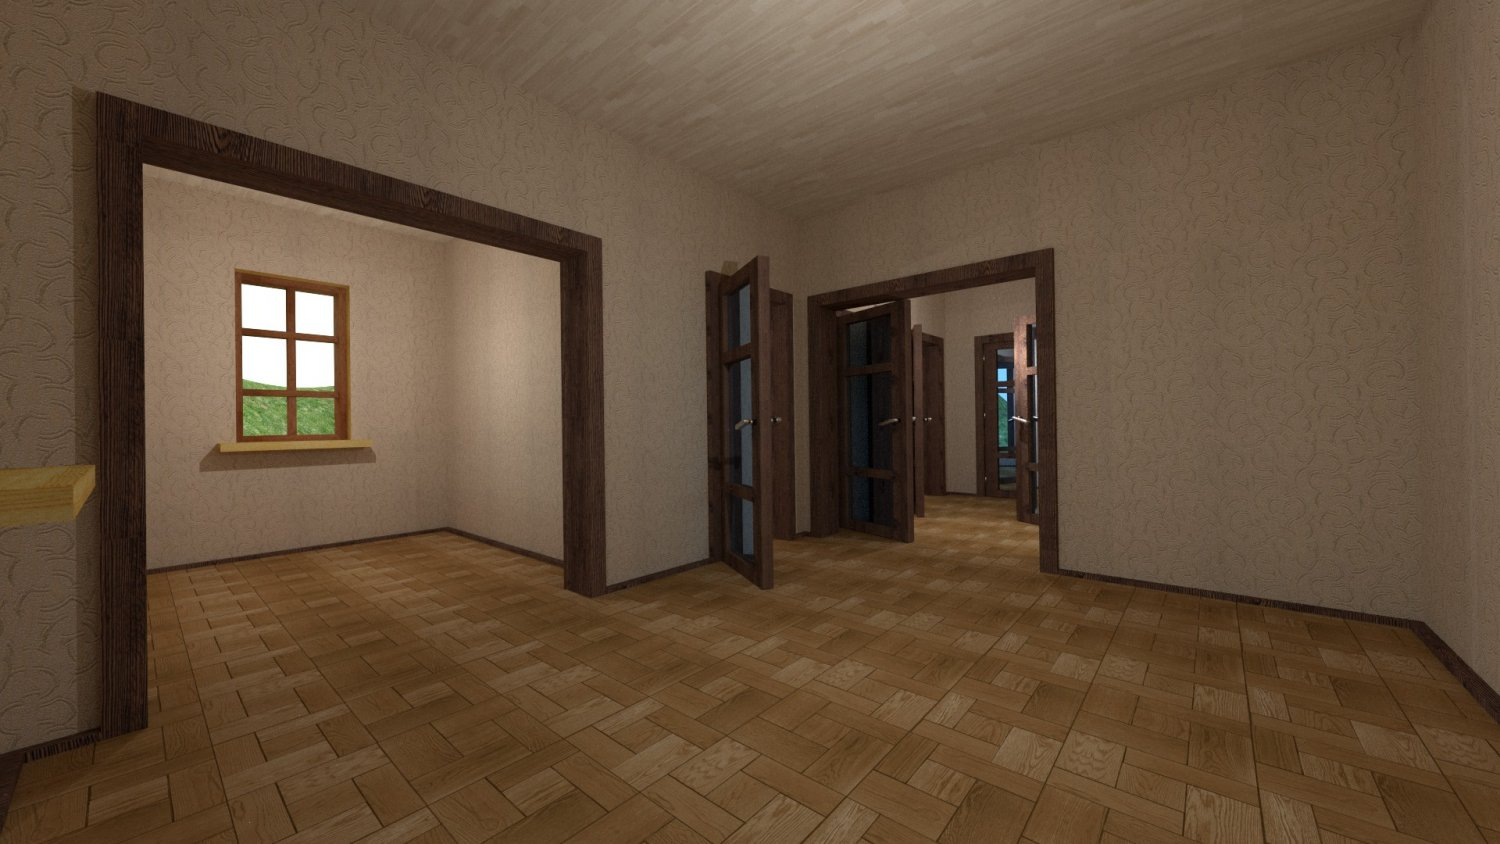 House for an interior D095 Empty rooms  DownloadFree3Dcom